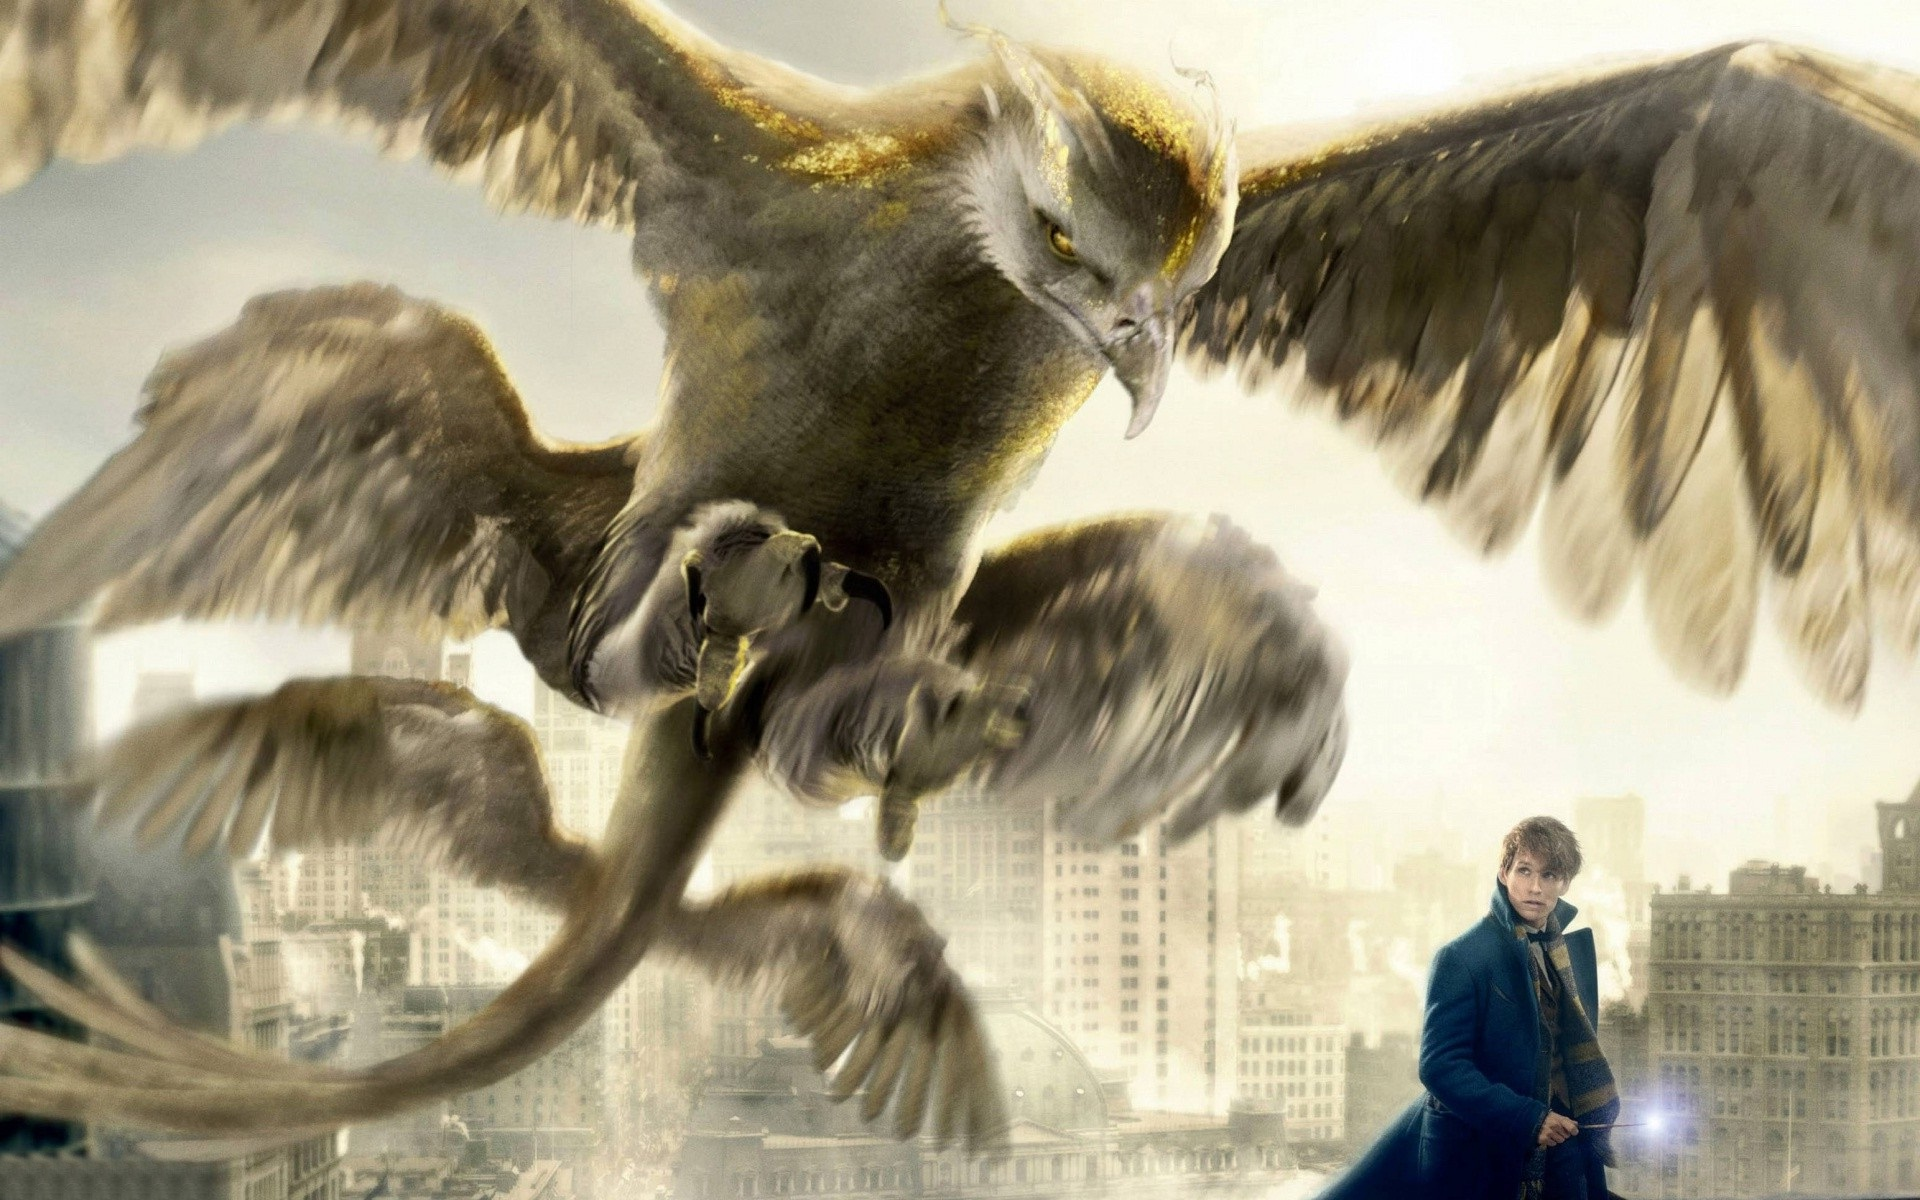 Fantastic Beasts And Where To Find Them Wallpapers HD Backgrounds 1920x1200